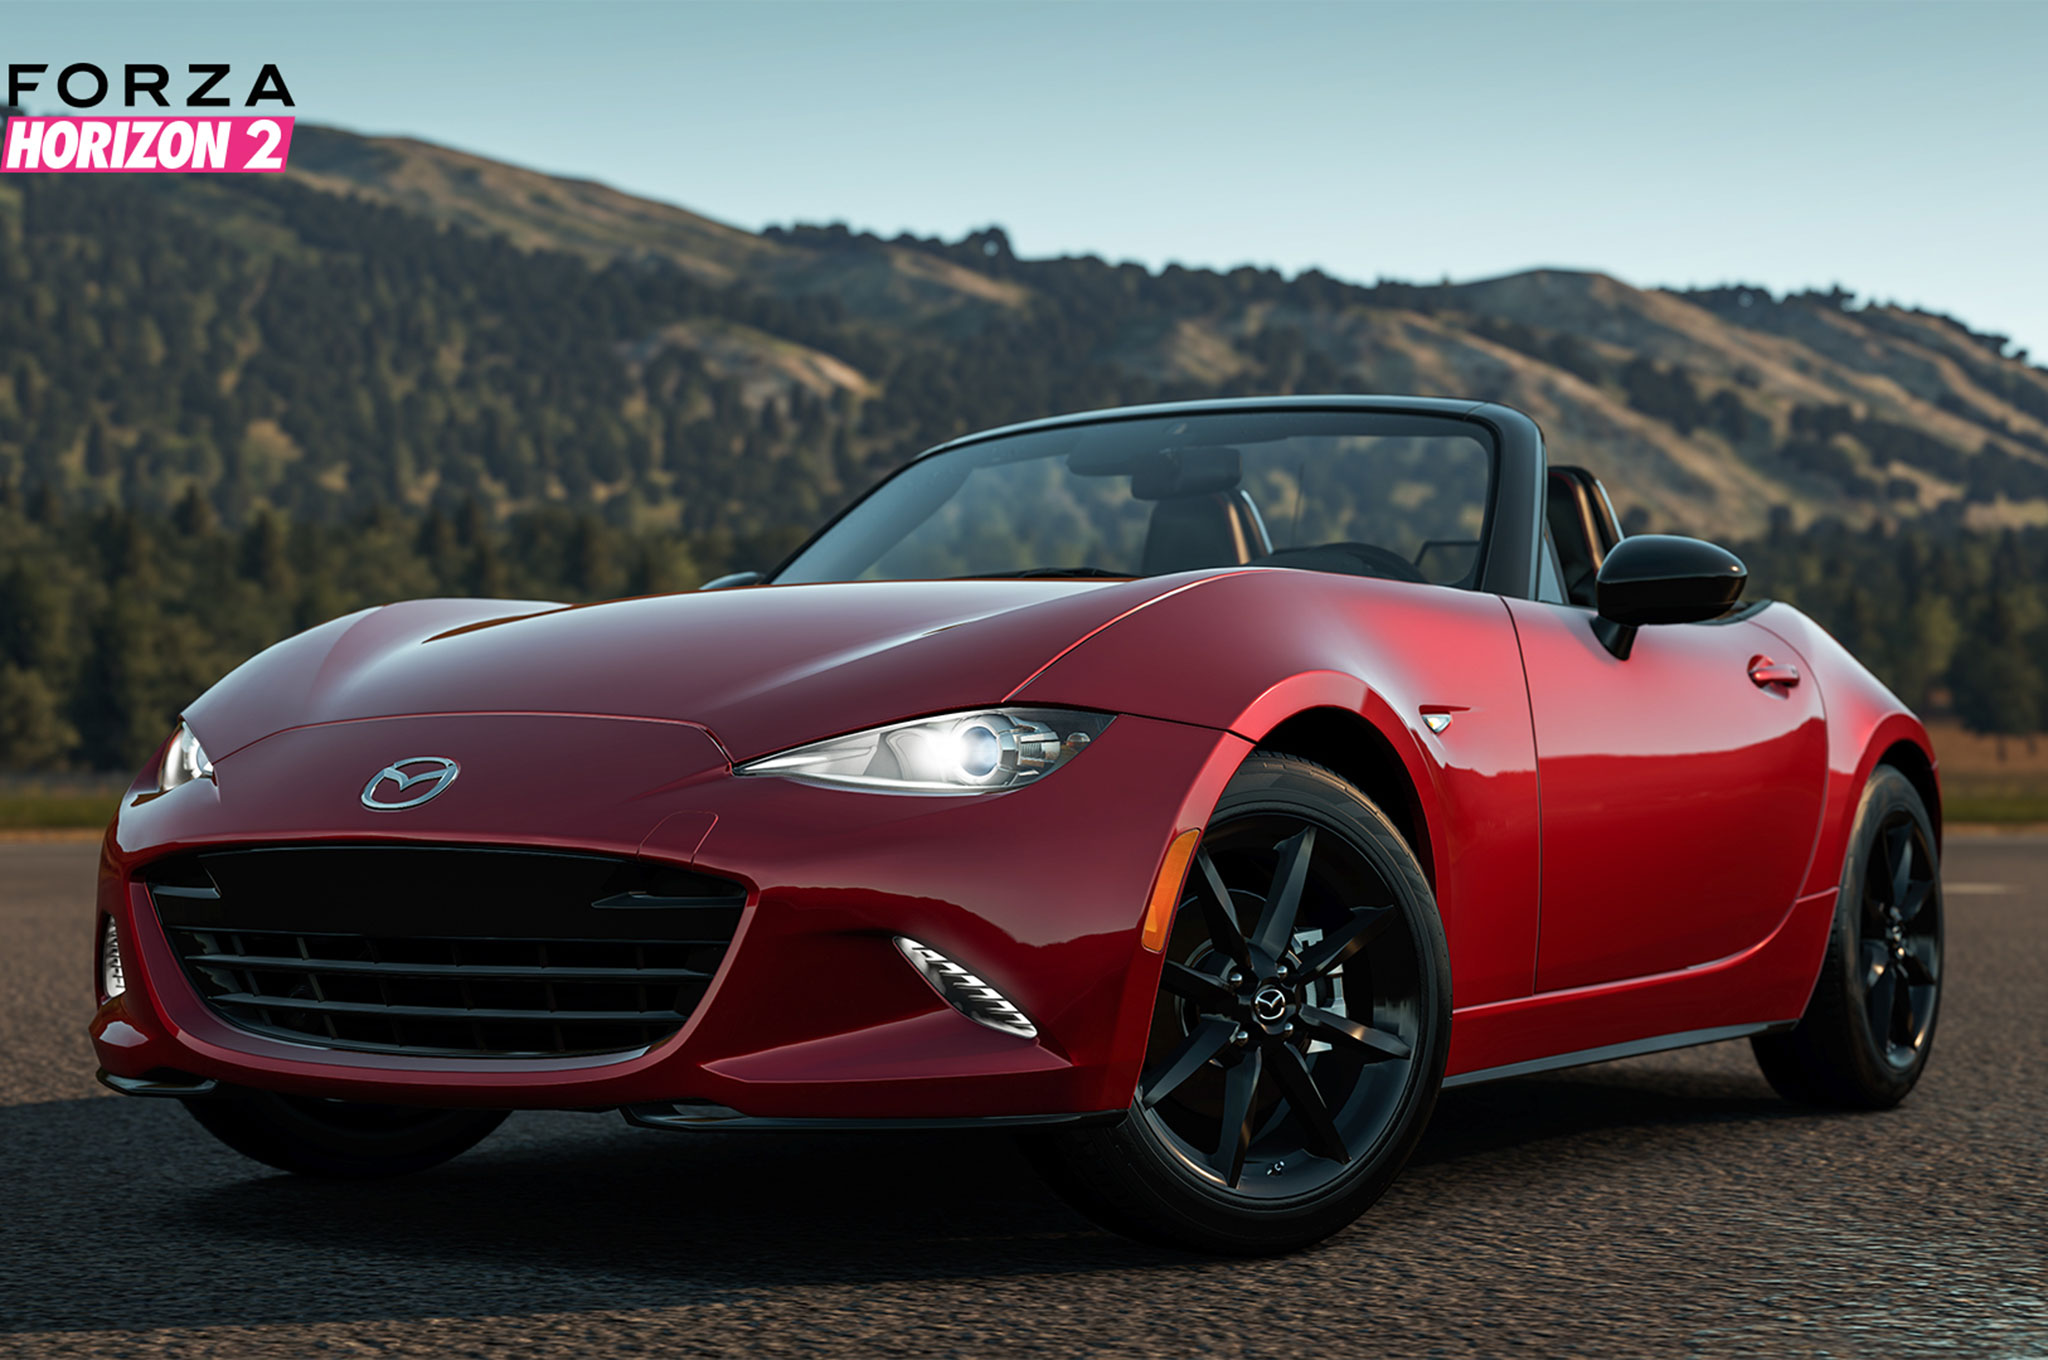 2016 Mazda MX 5 Miata In Forza Horizon 2 Front Three Quarter